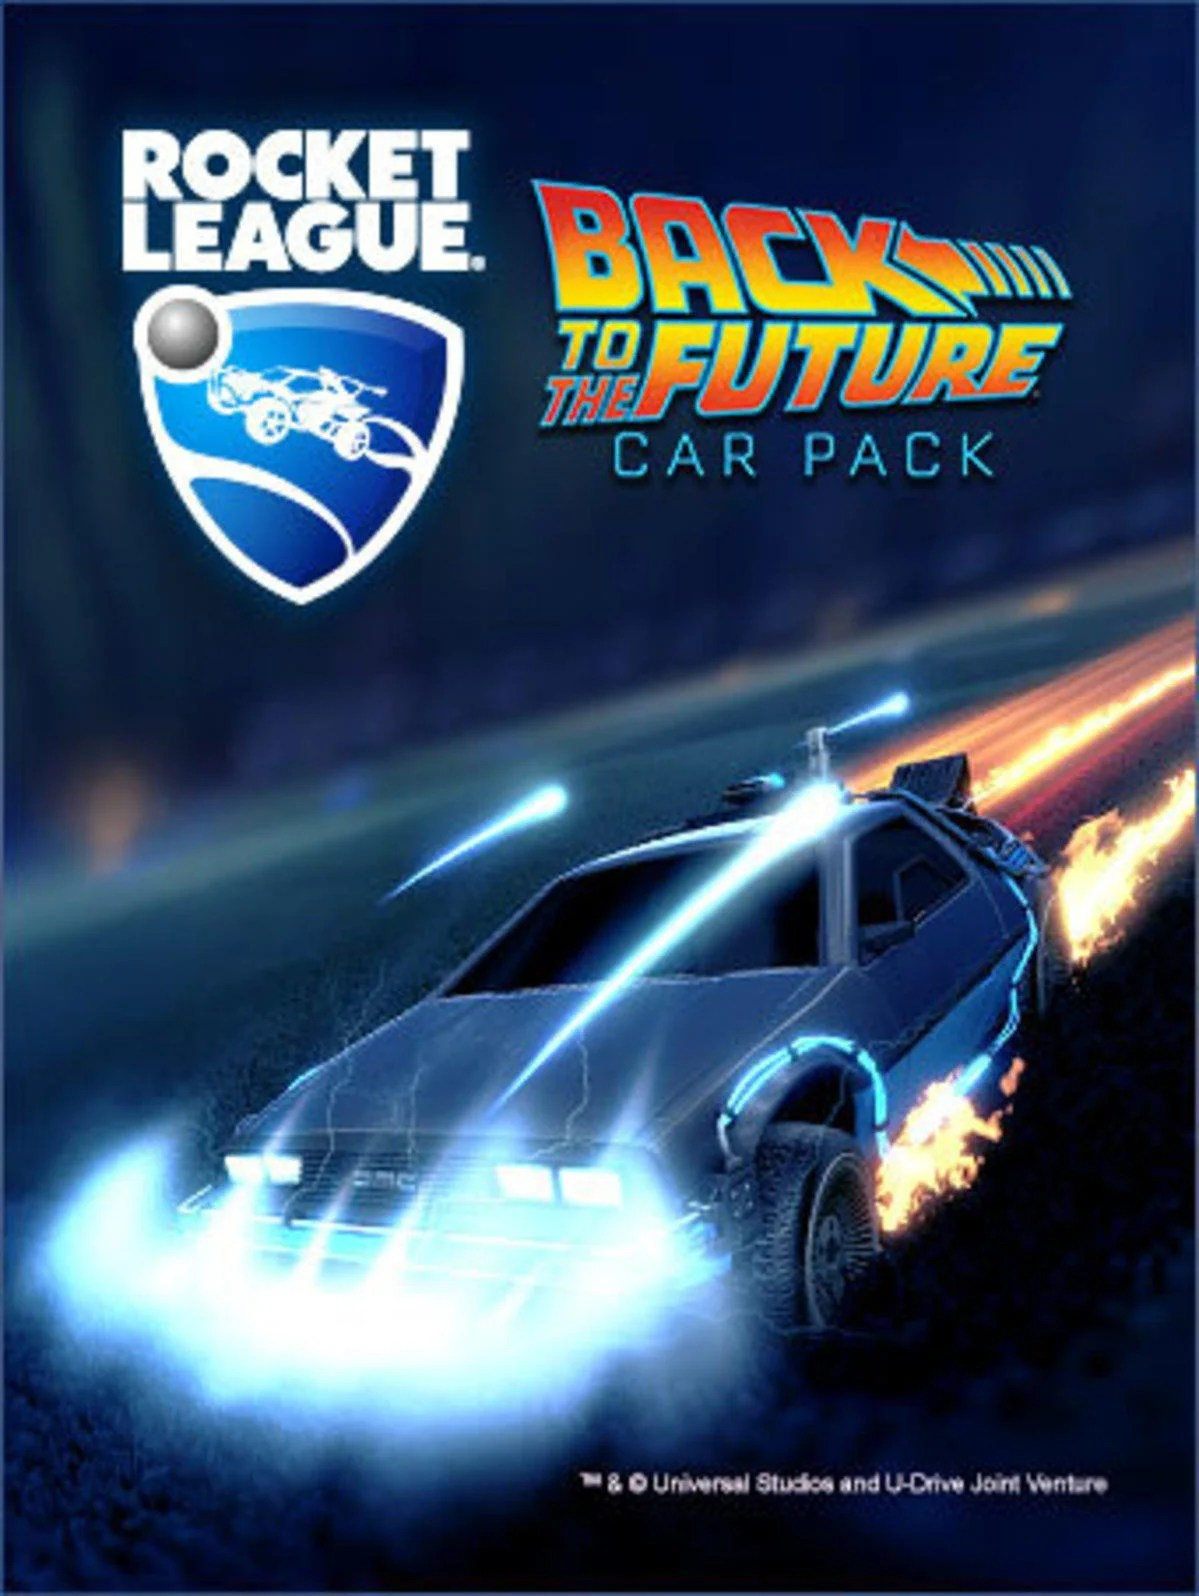 Super Fast Car Wallpaper Back To The Future Rocket League 174 Official Site